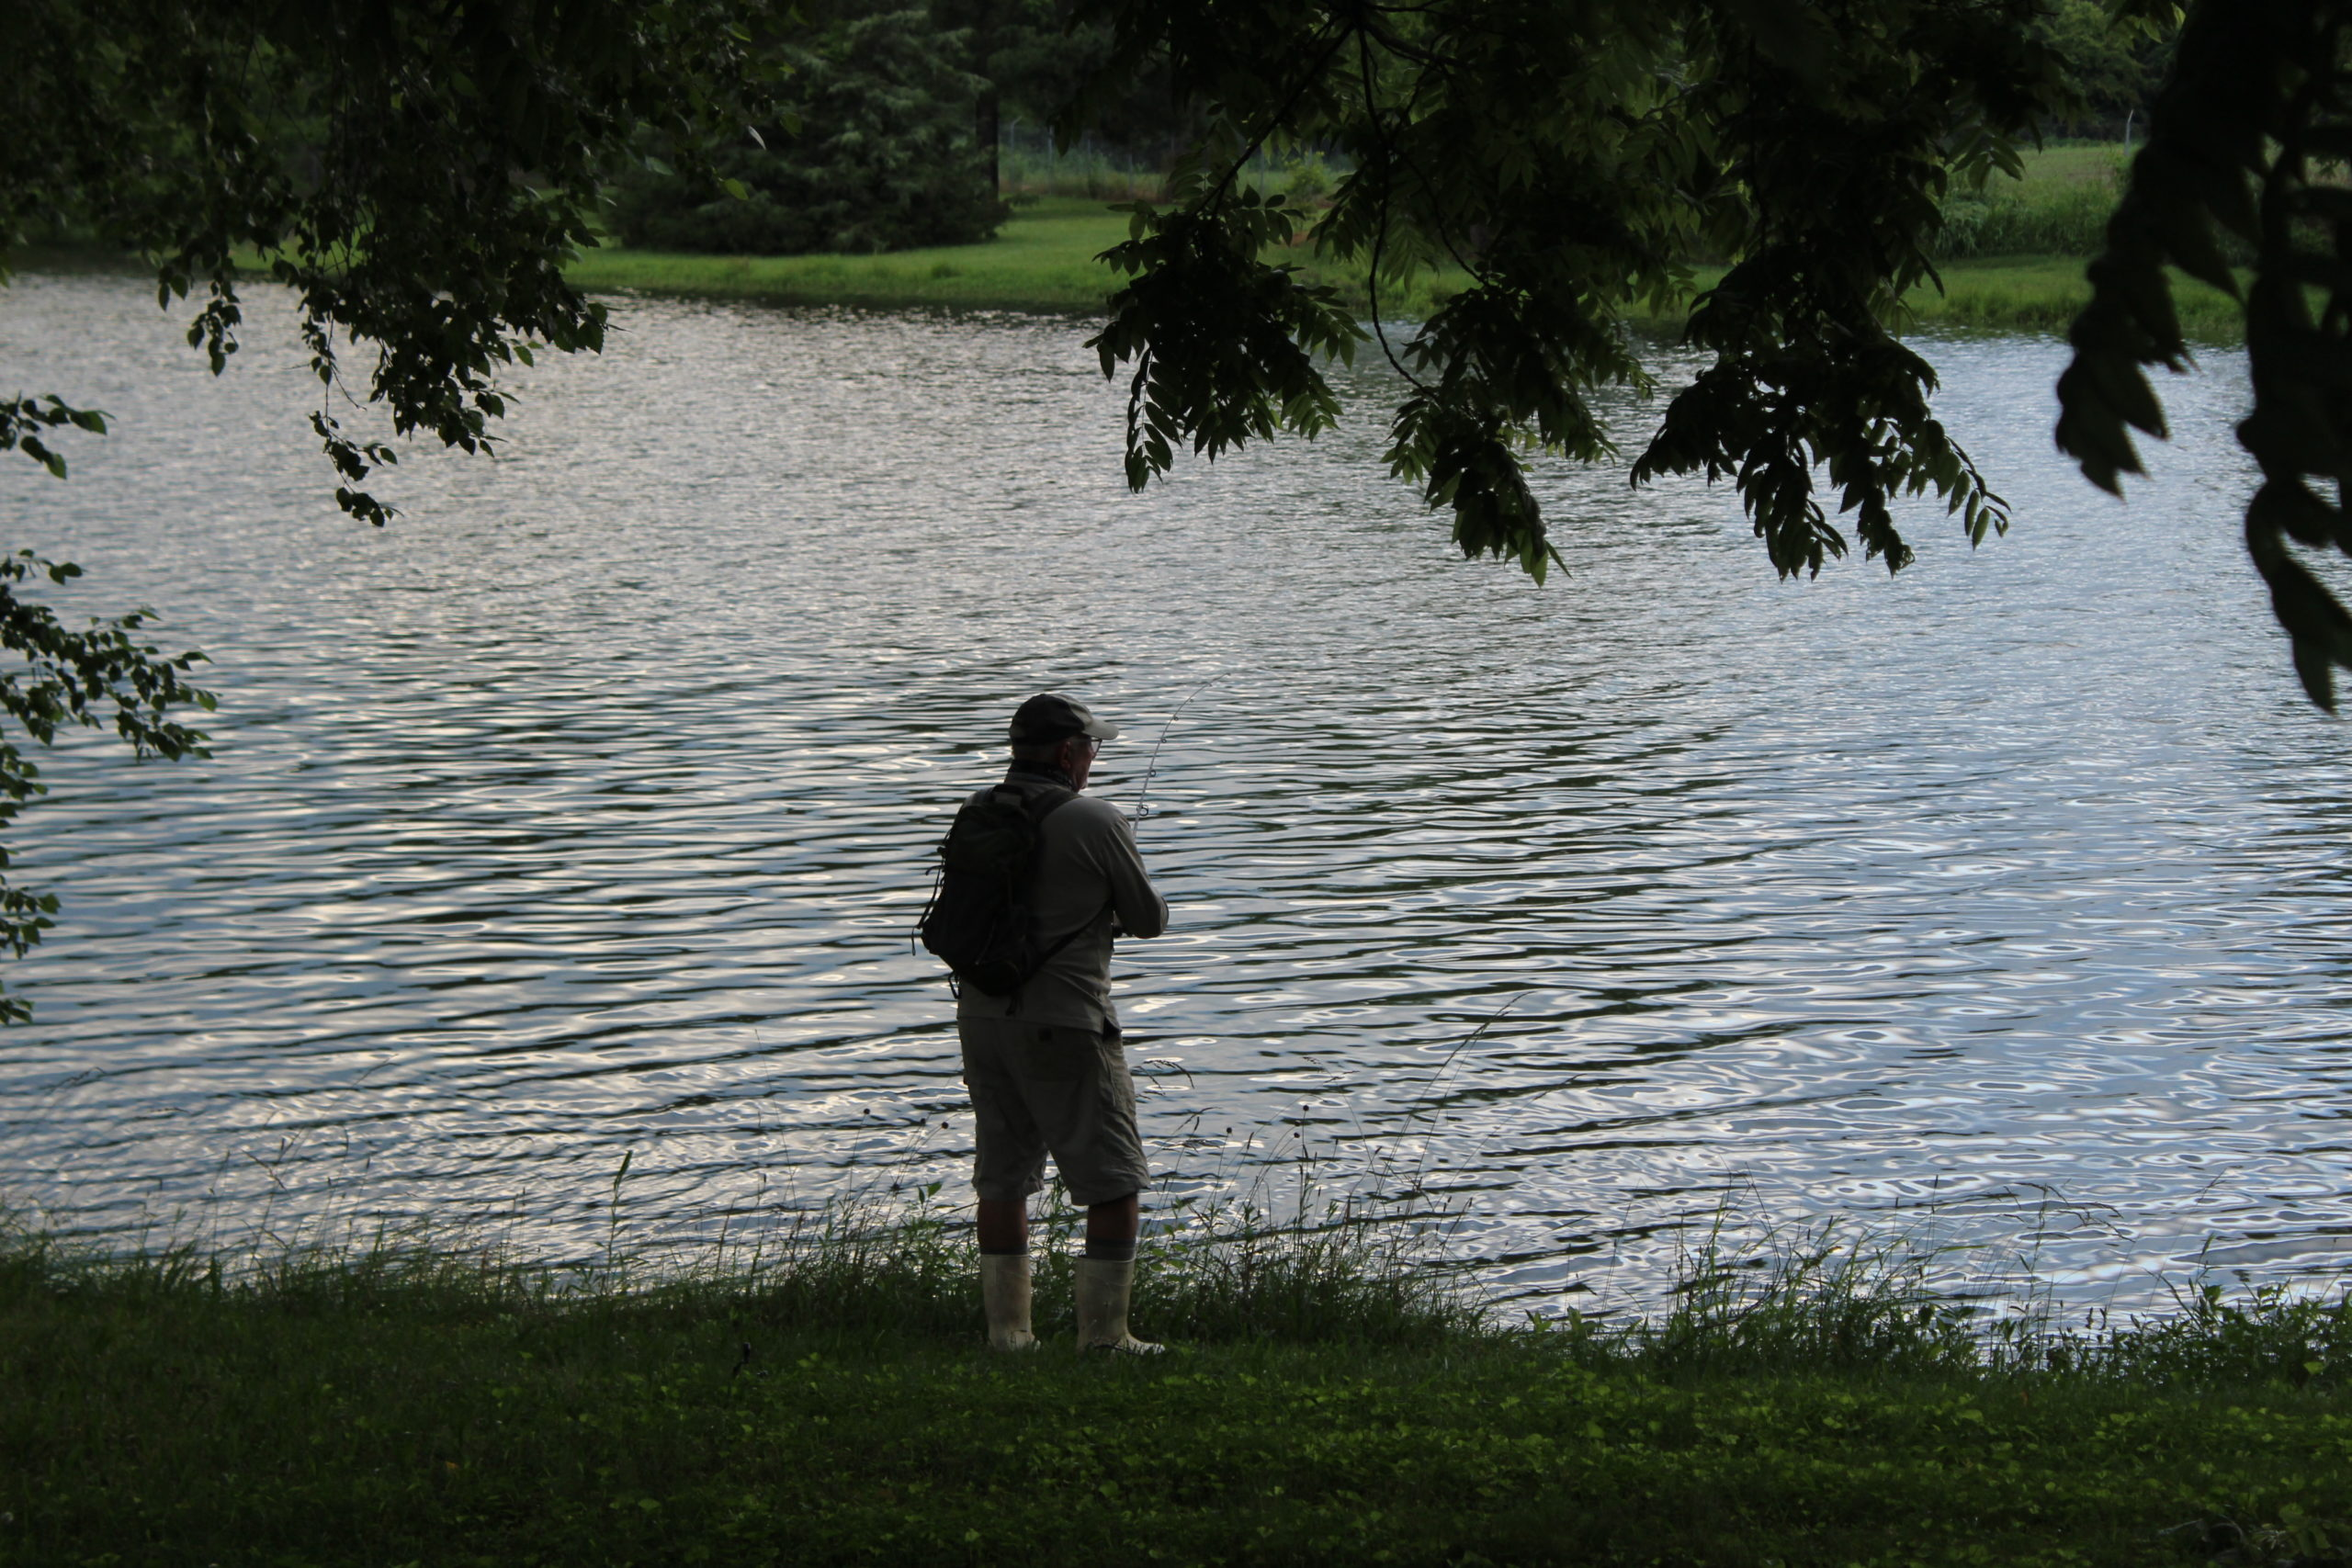 Fisherman at Cane Creek Reservoir